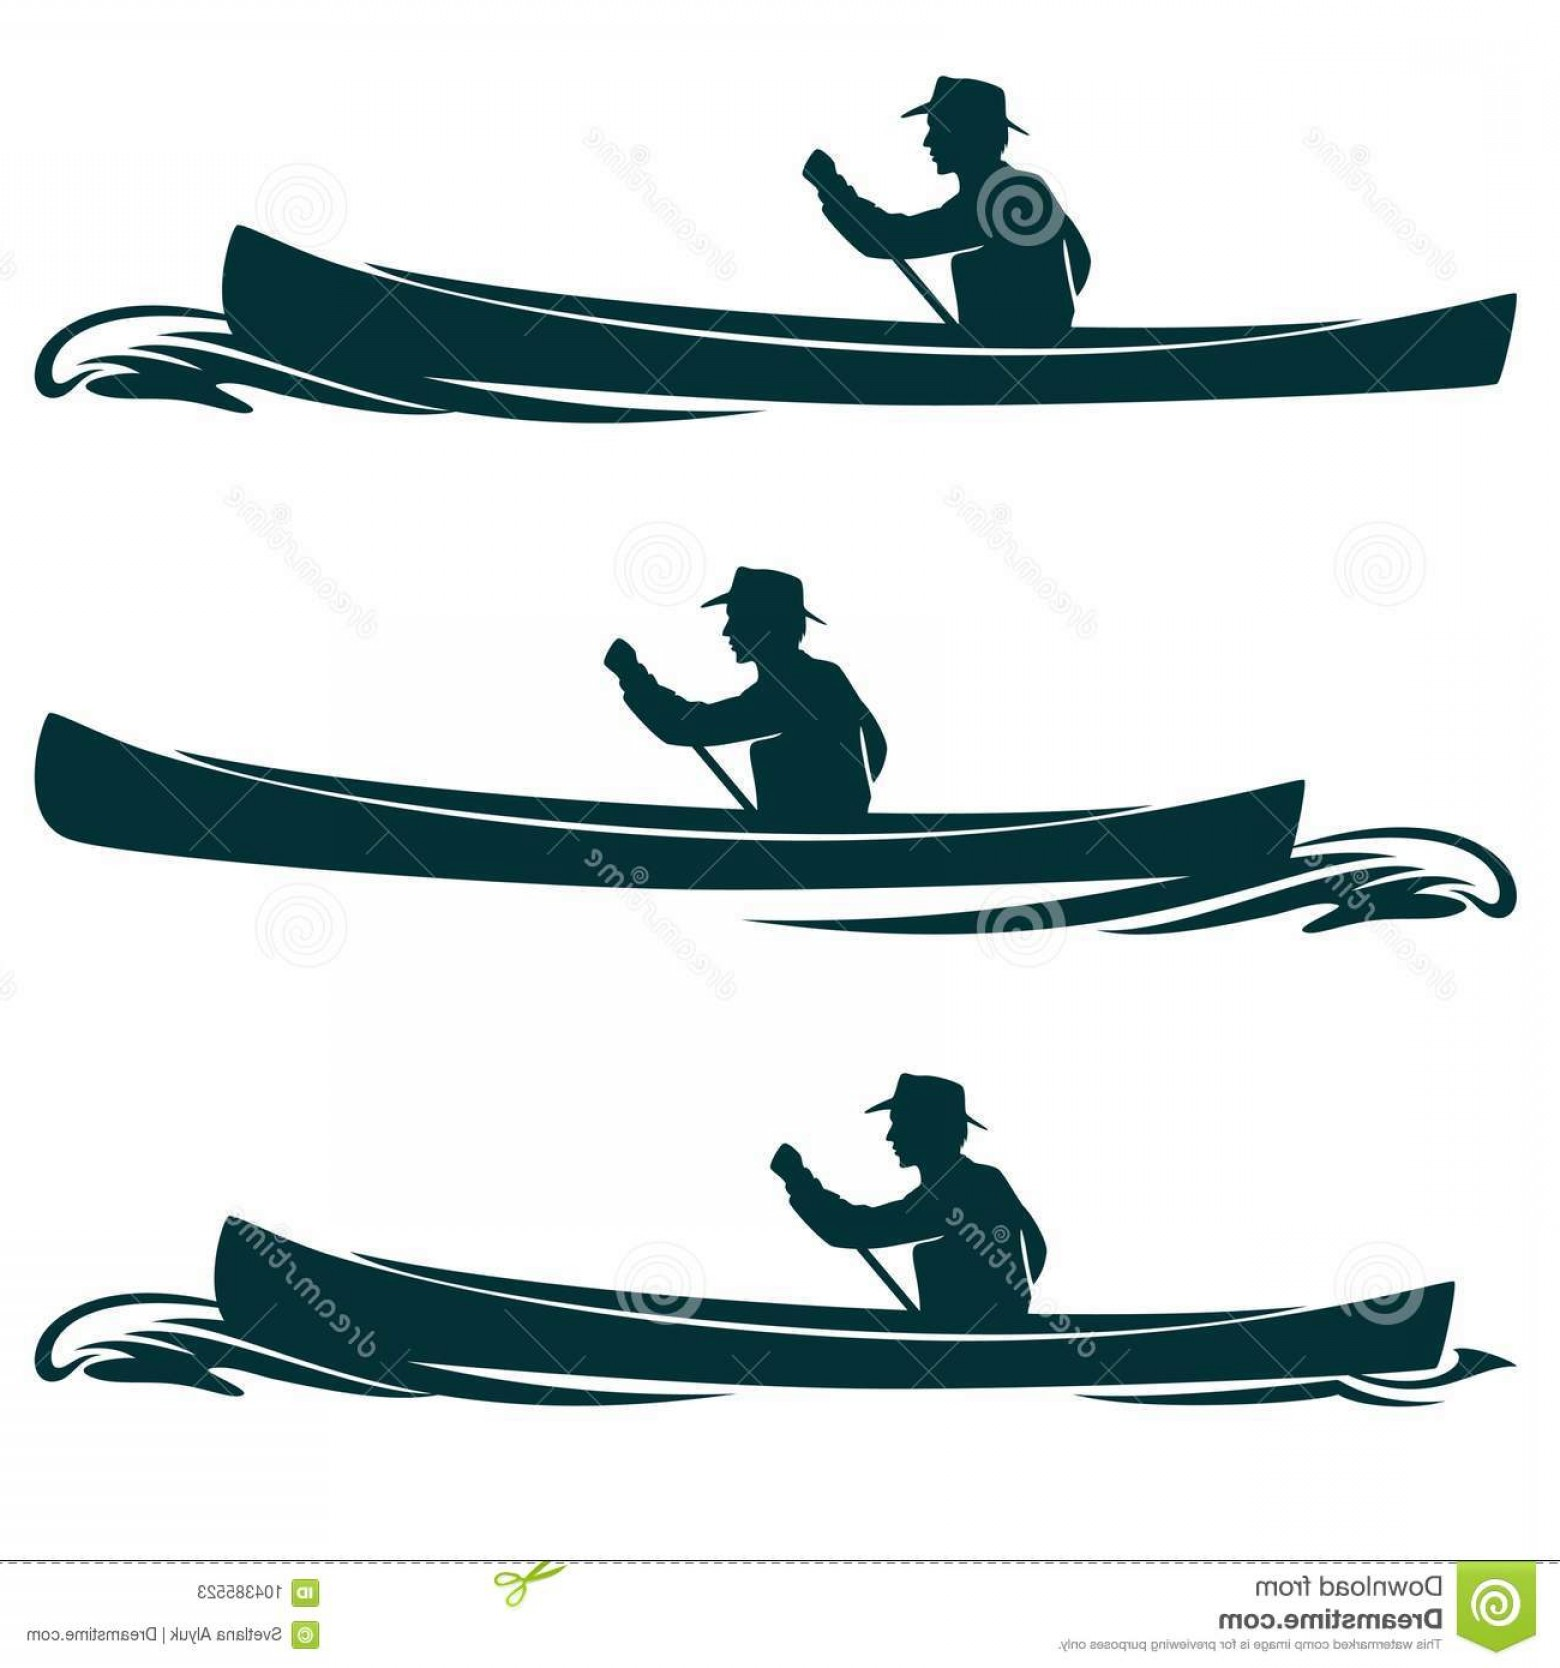 Canoe Vector: Man Canoe Boat Side View Vector Design Rowing Set Image